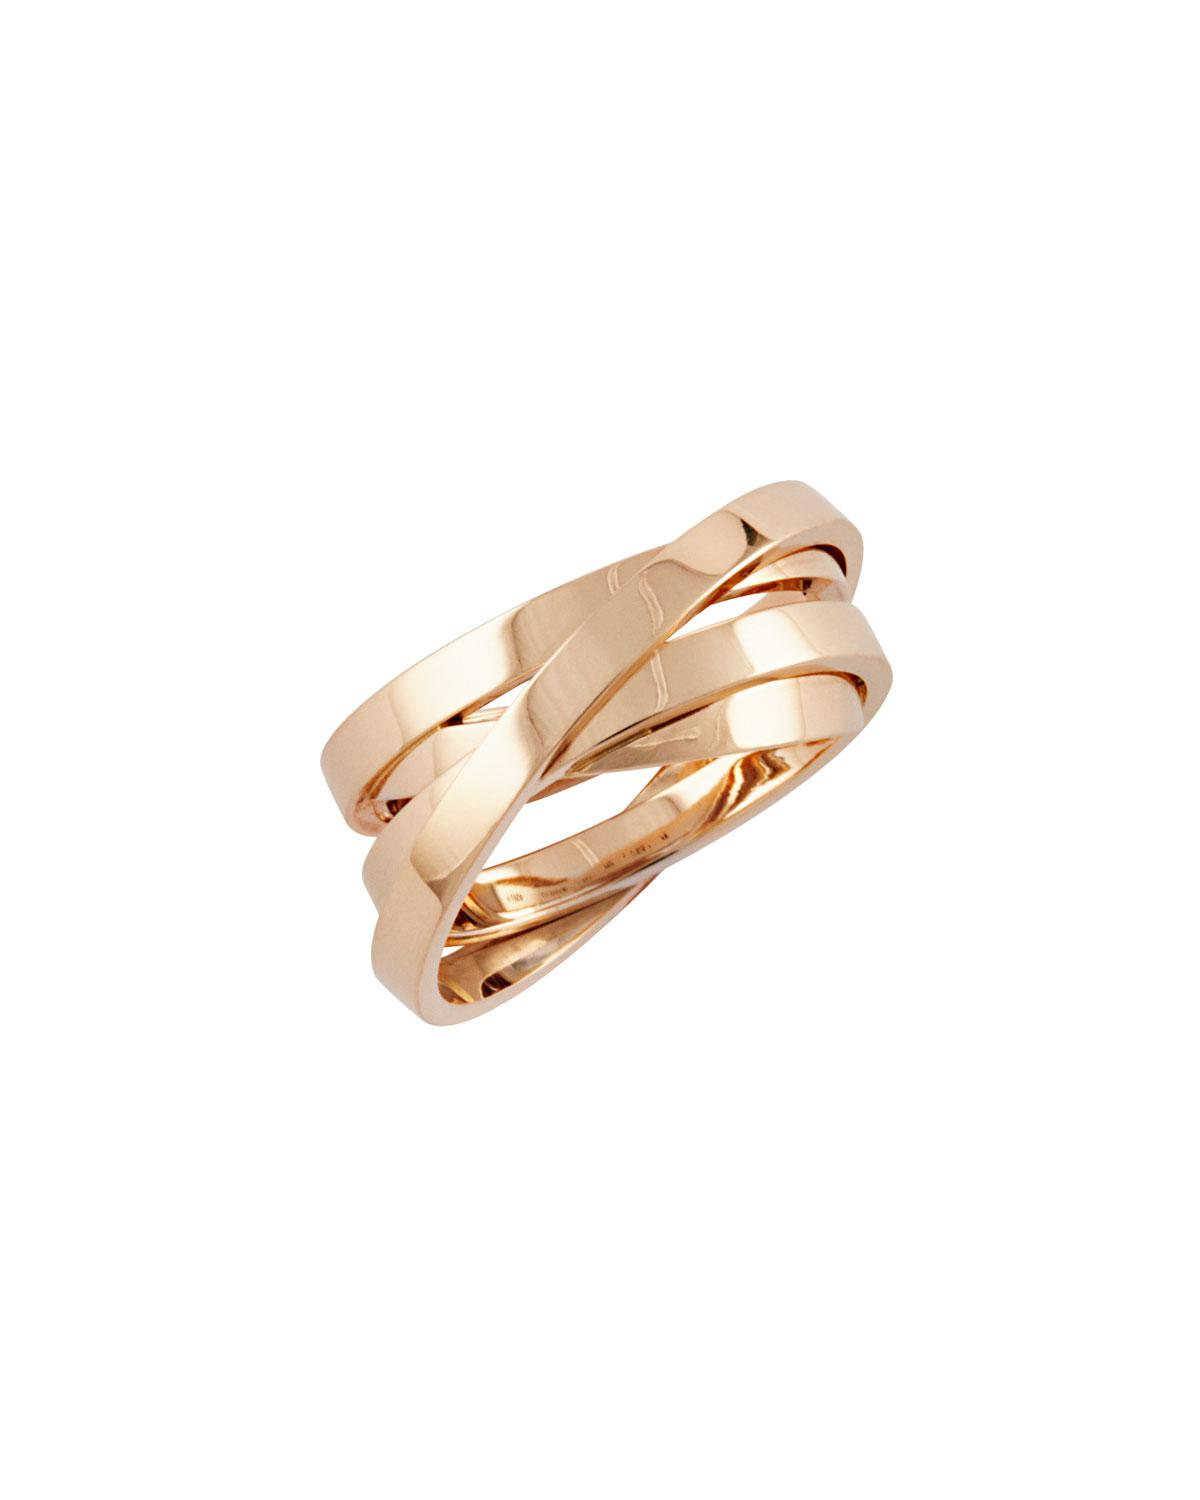 Repossi Berbère Technical Ring in 18K Rose Gold PoL8CxH3ef